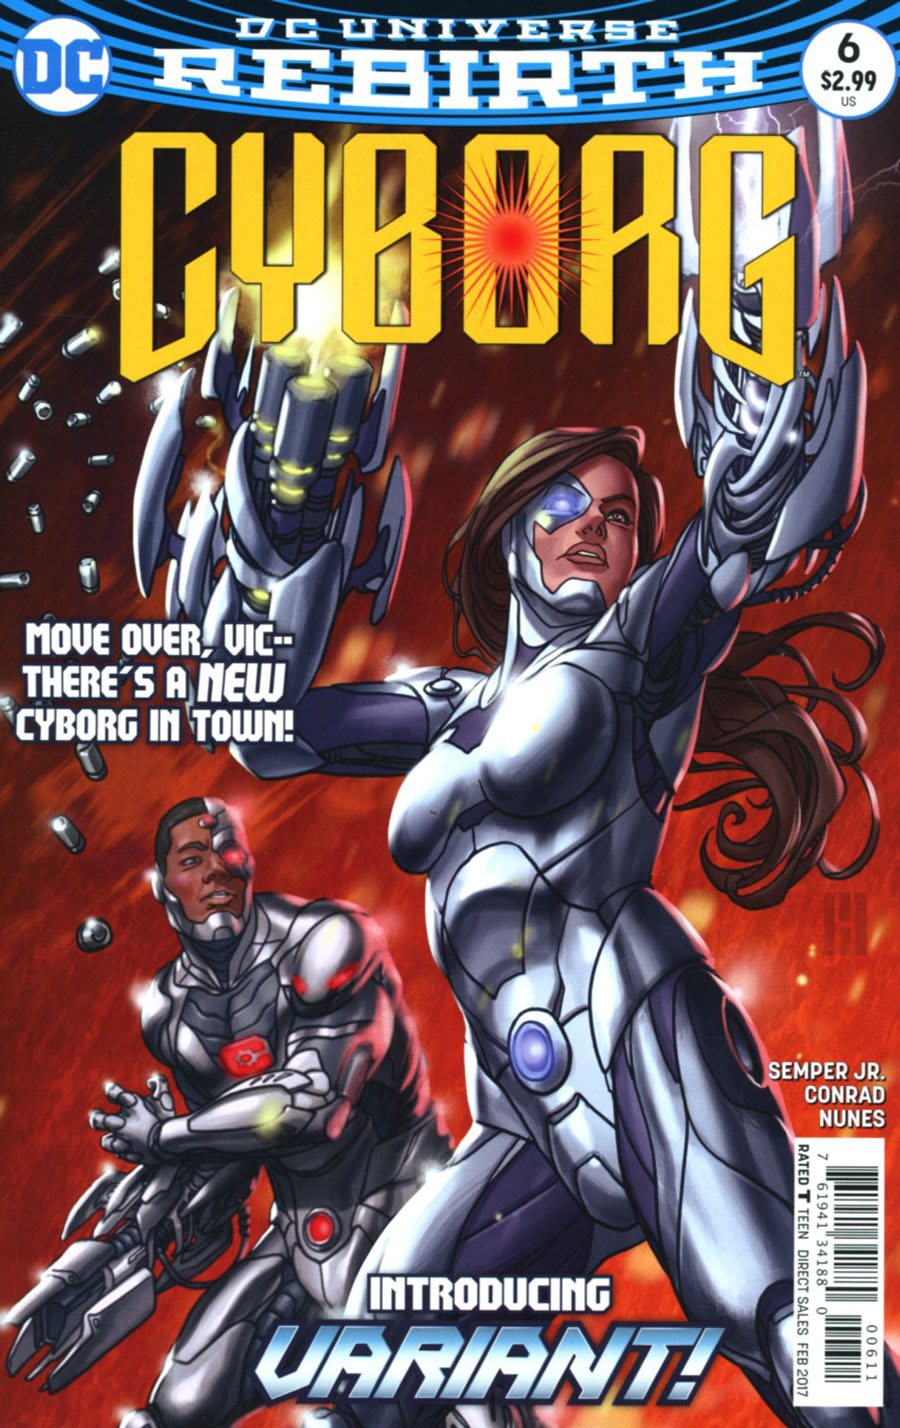 Cyborg Vol 2 #6 Cover A Regular Mike Choi Cover